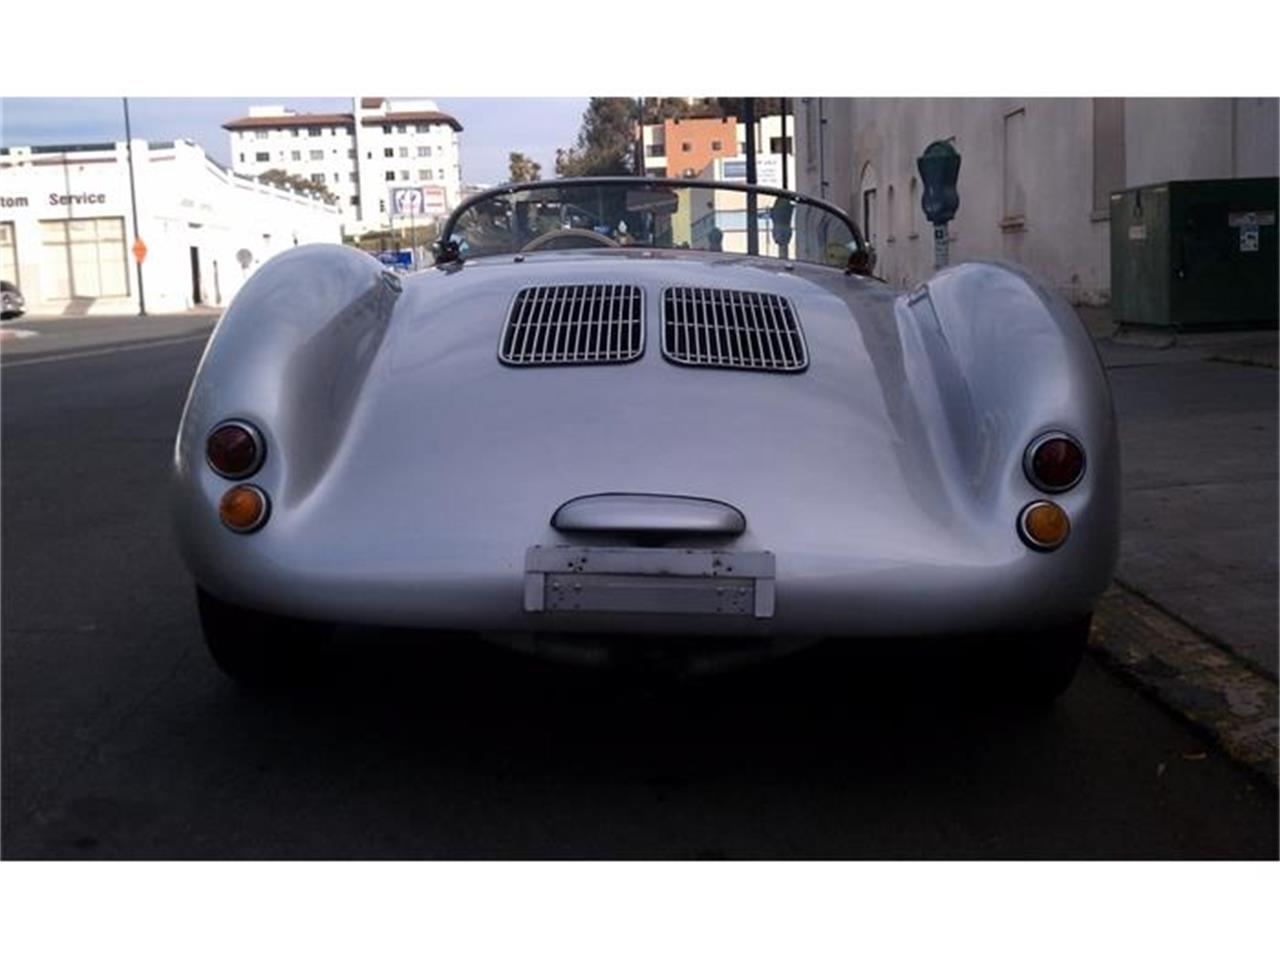 Large Picture of '55 Porsche 550 Spyder Replica - AH6S